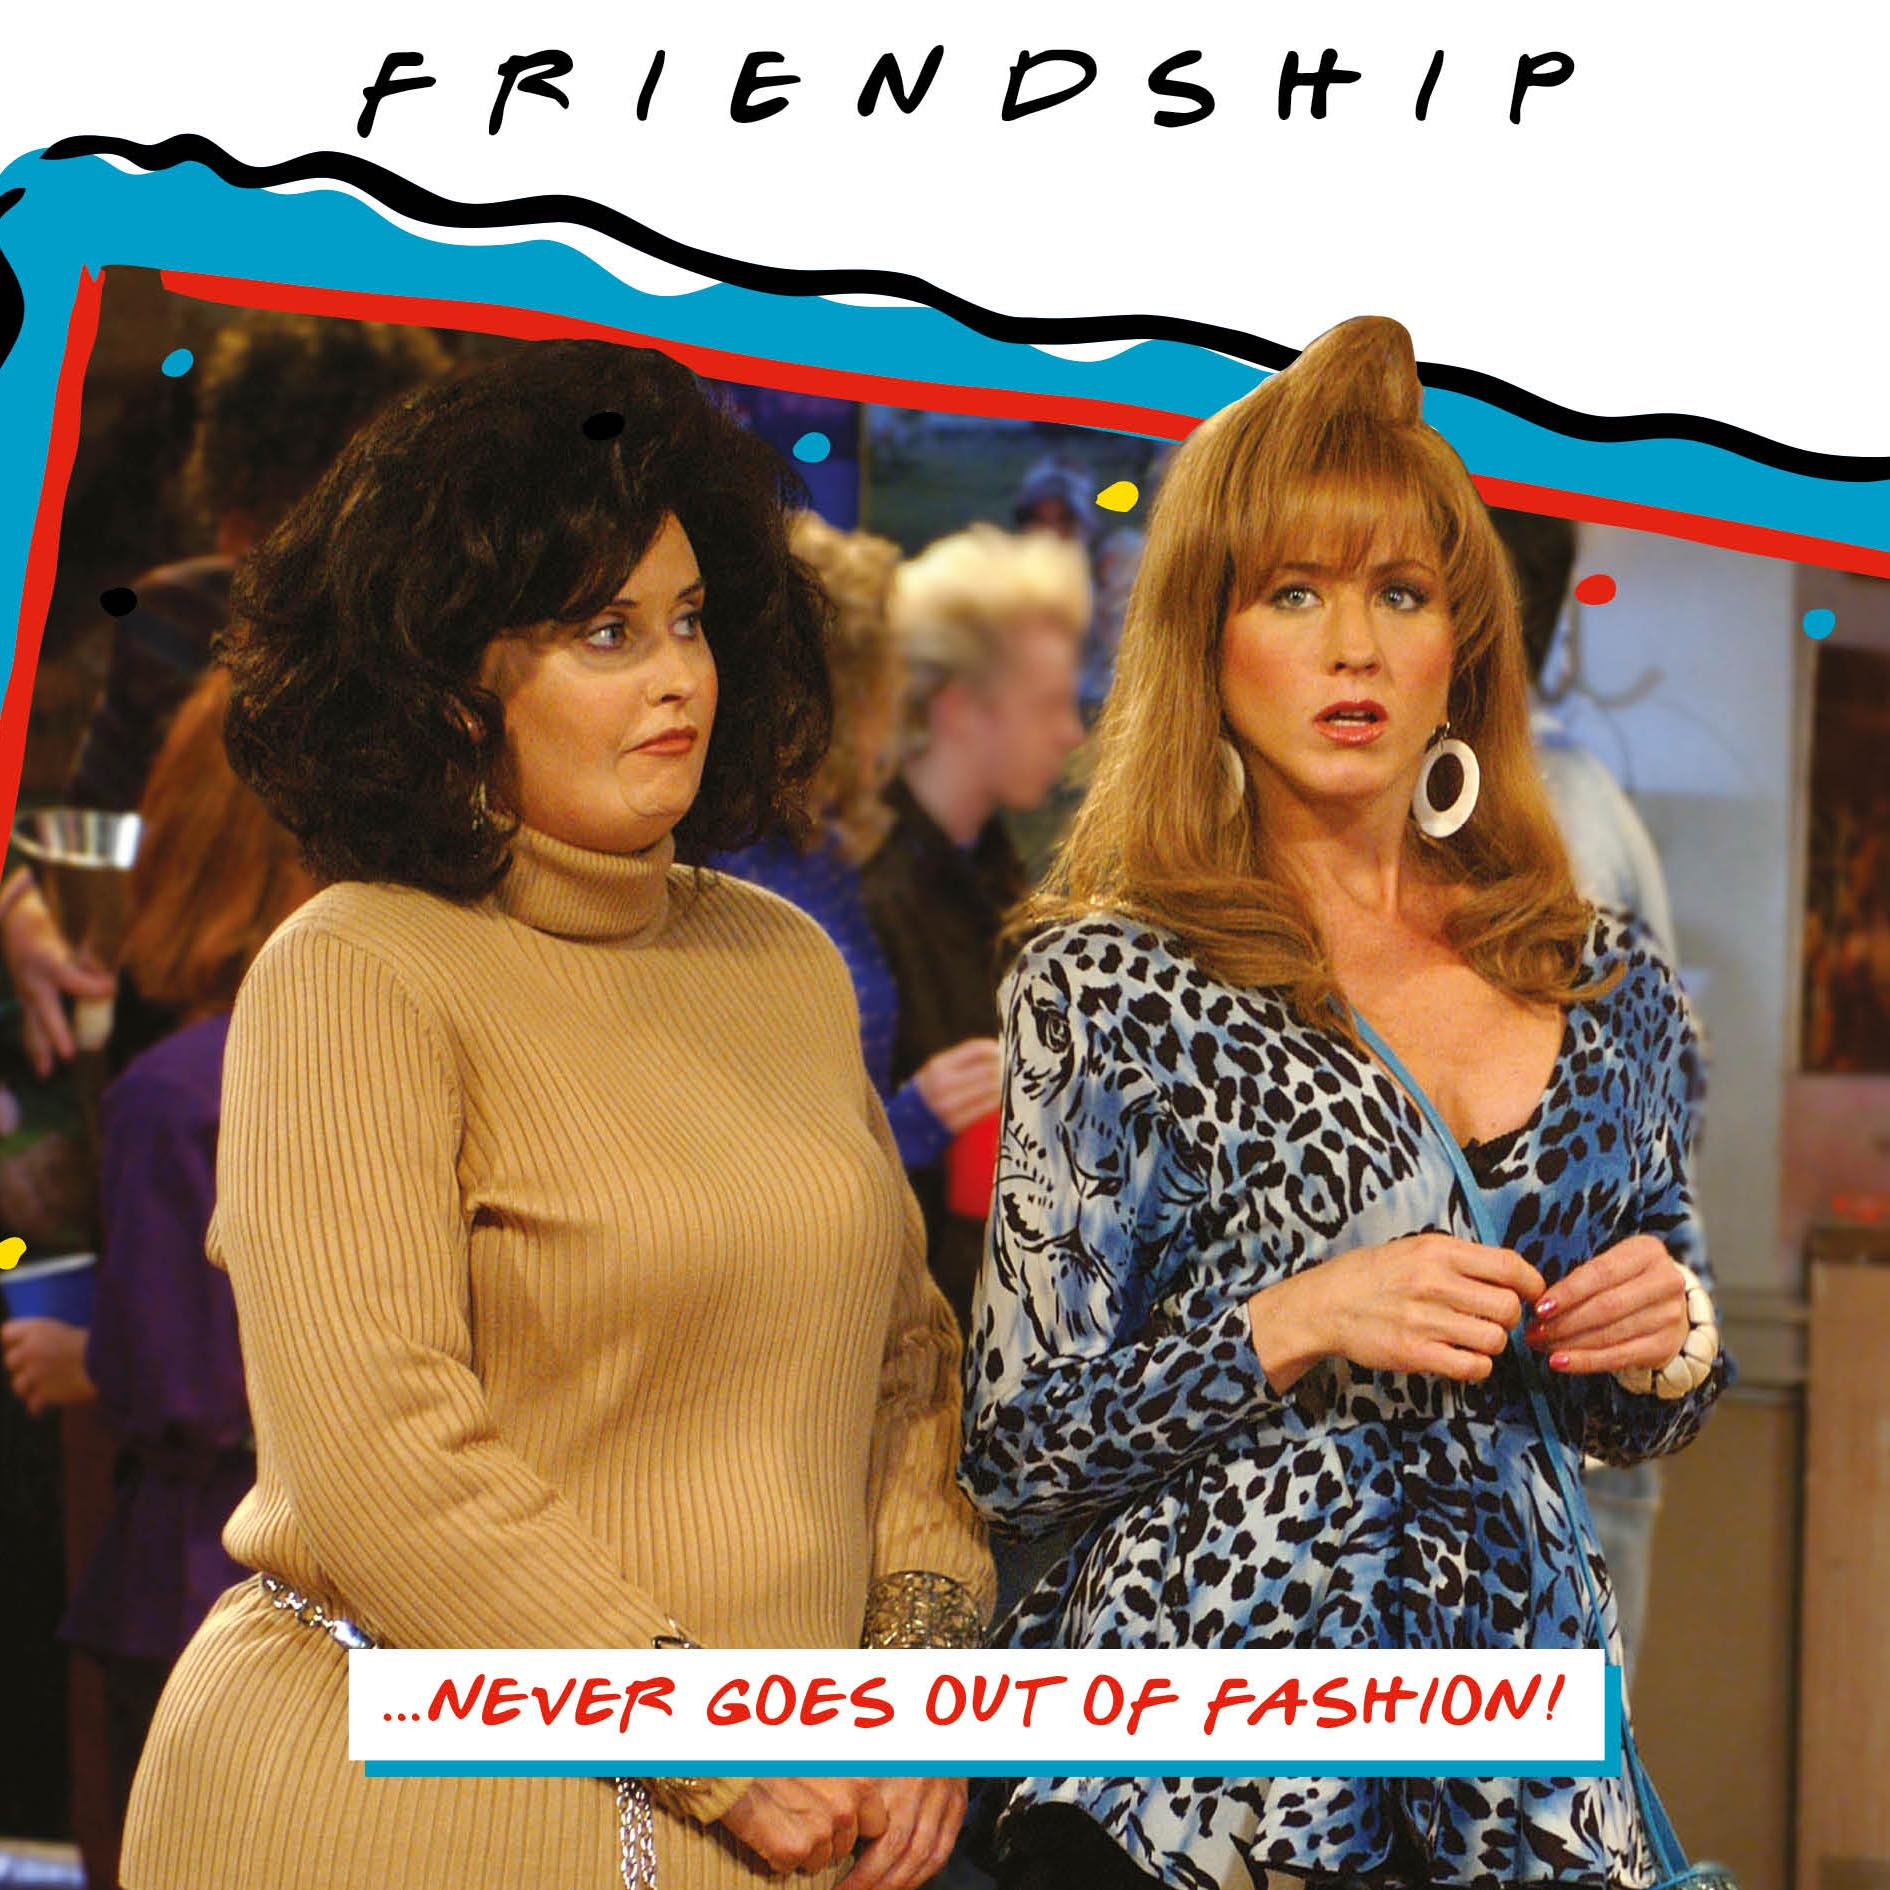 Friends 'Friendshp never goes out of fashion' Square Birthday Card